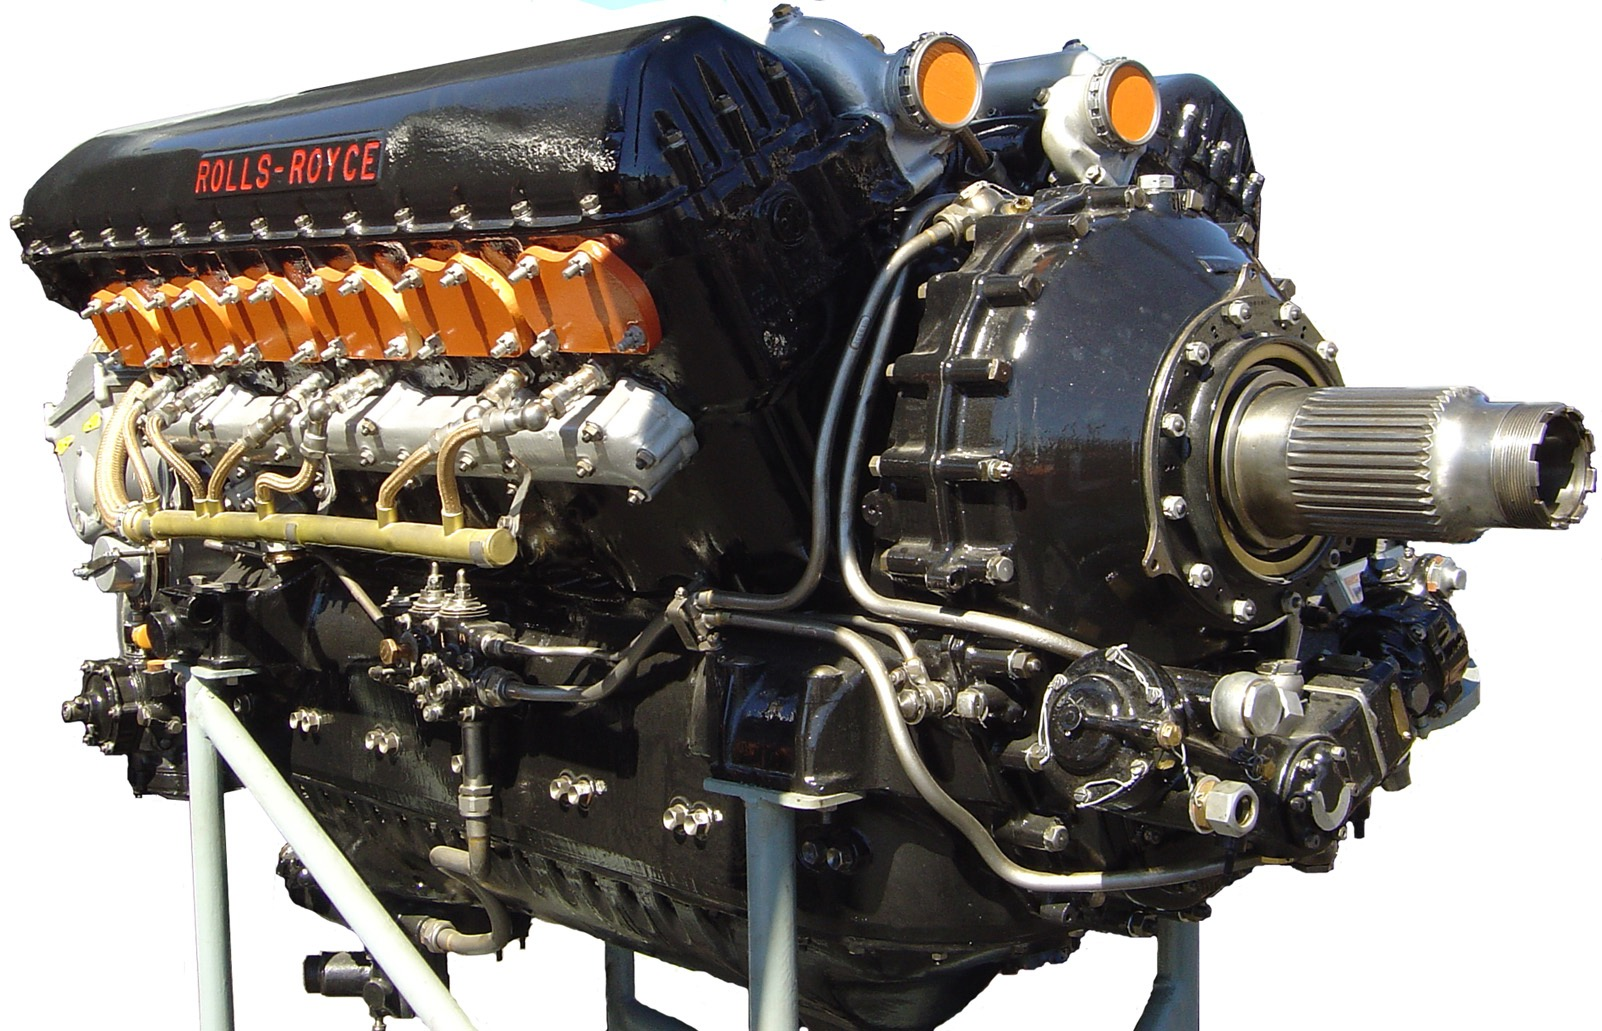 Rolls Royce Merlin Wikipedia 2002 Jaguar S Type Engine Diagram